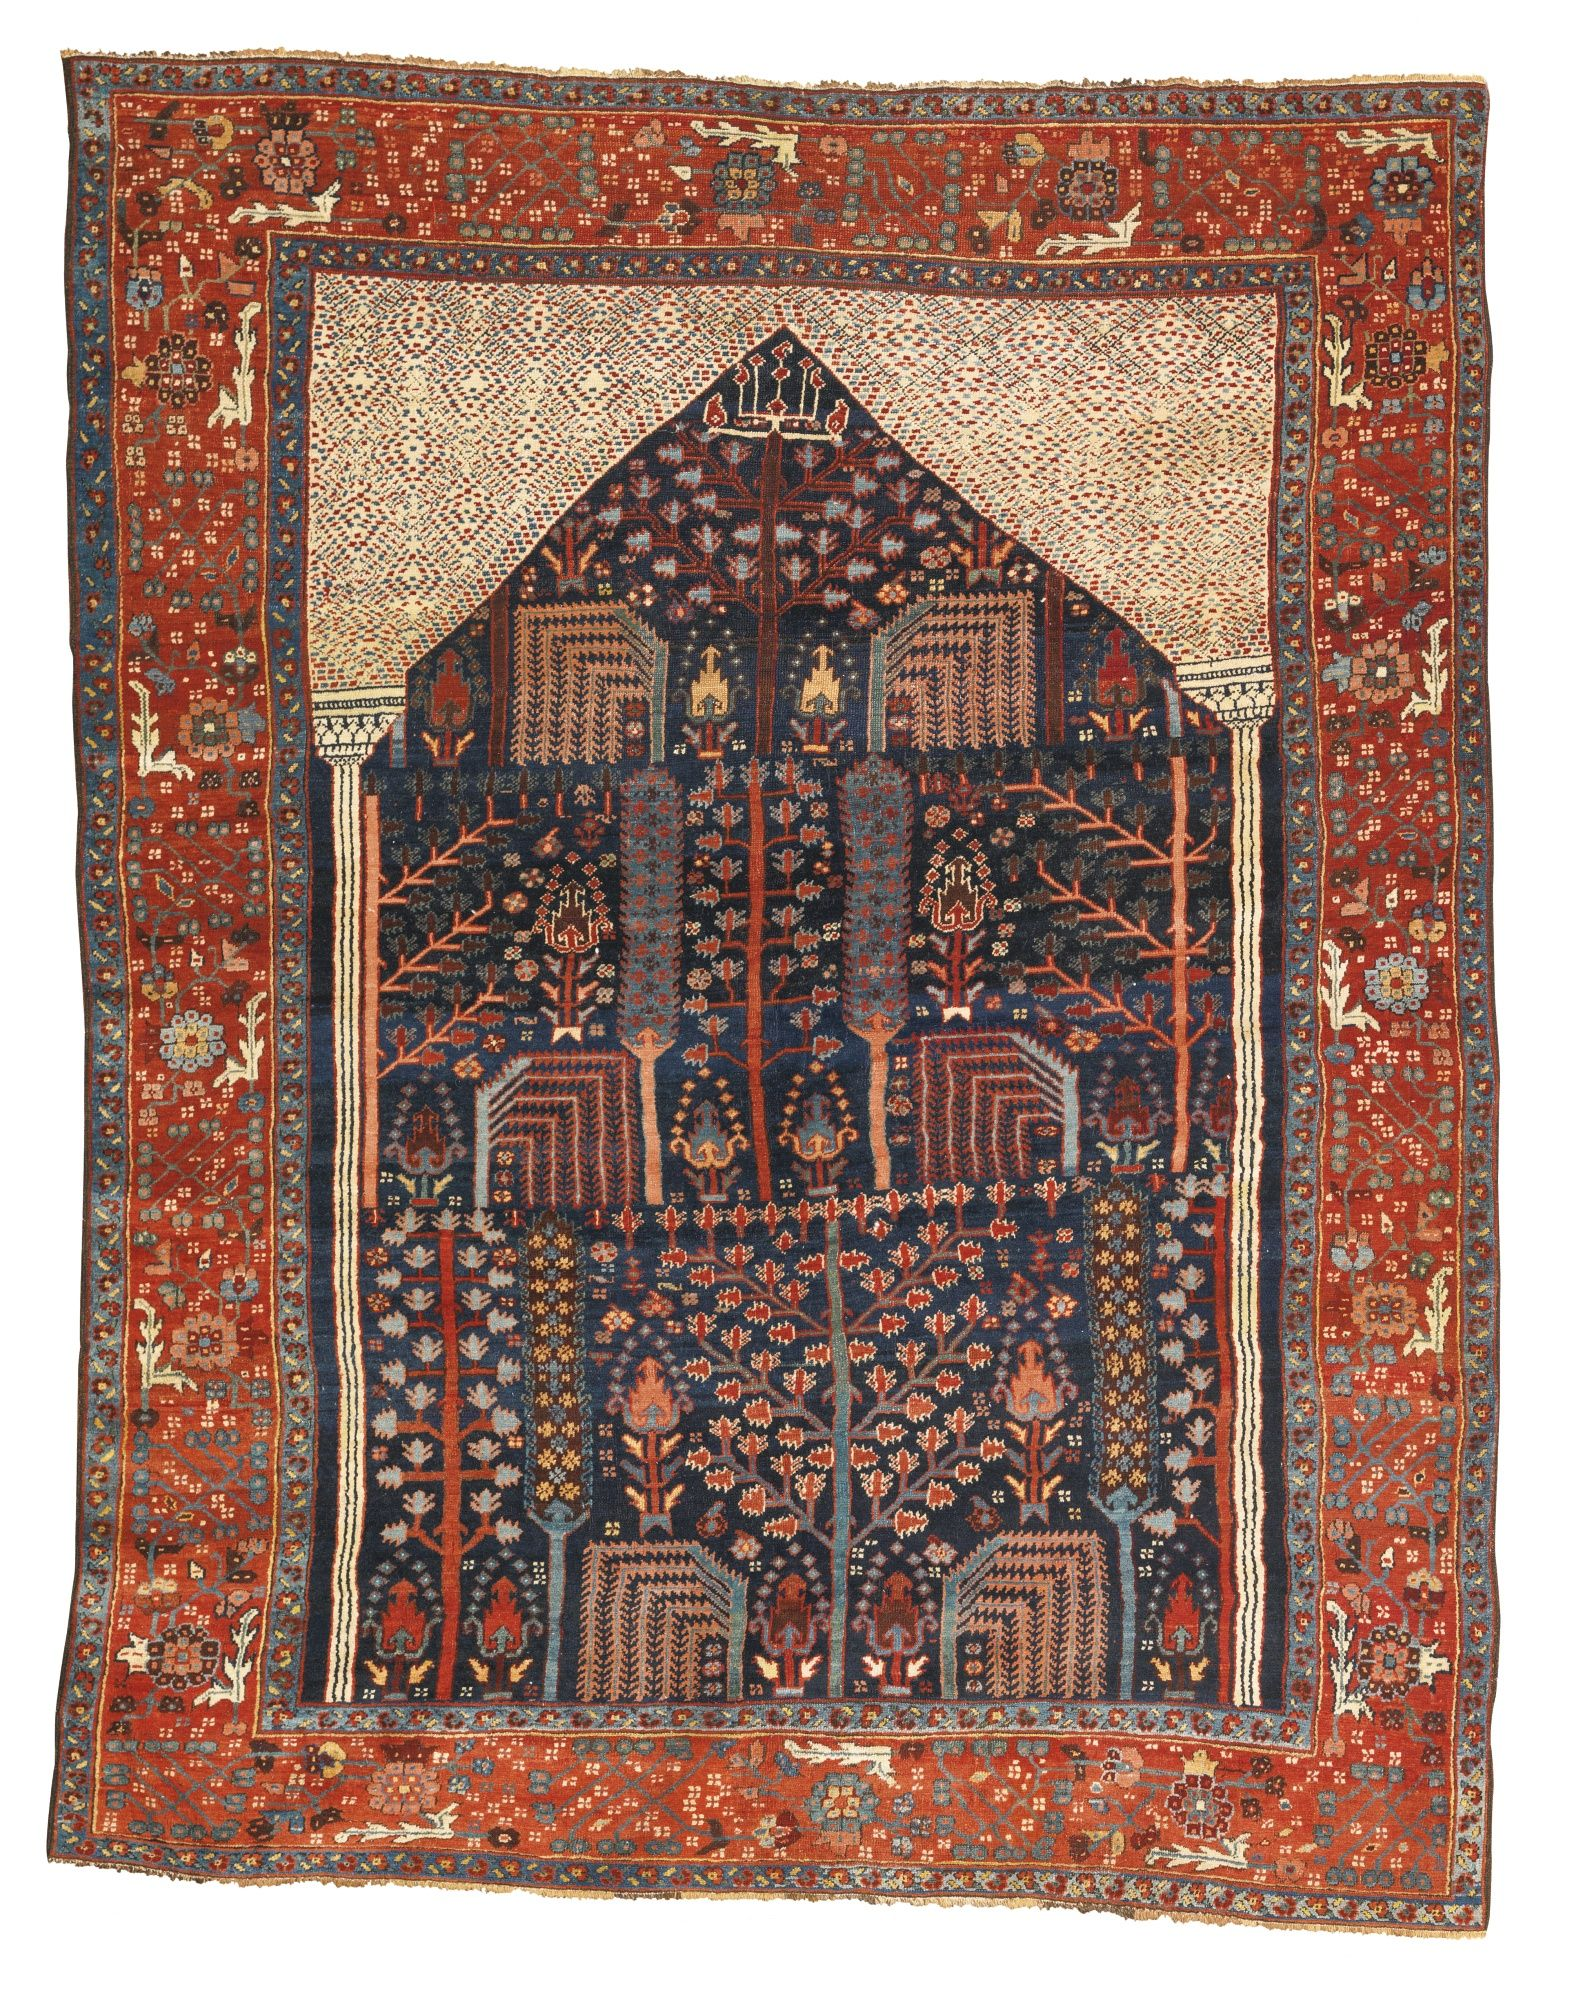 Backing Tapijt Persian Bakshaish Prayer Rug Third Quarter 19th Century Old